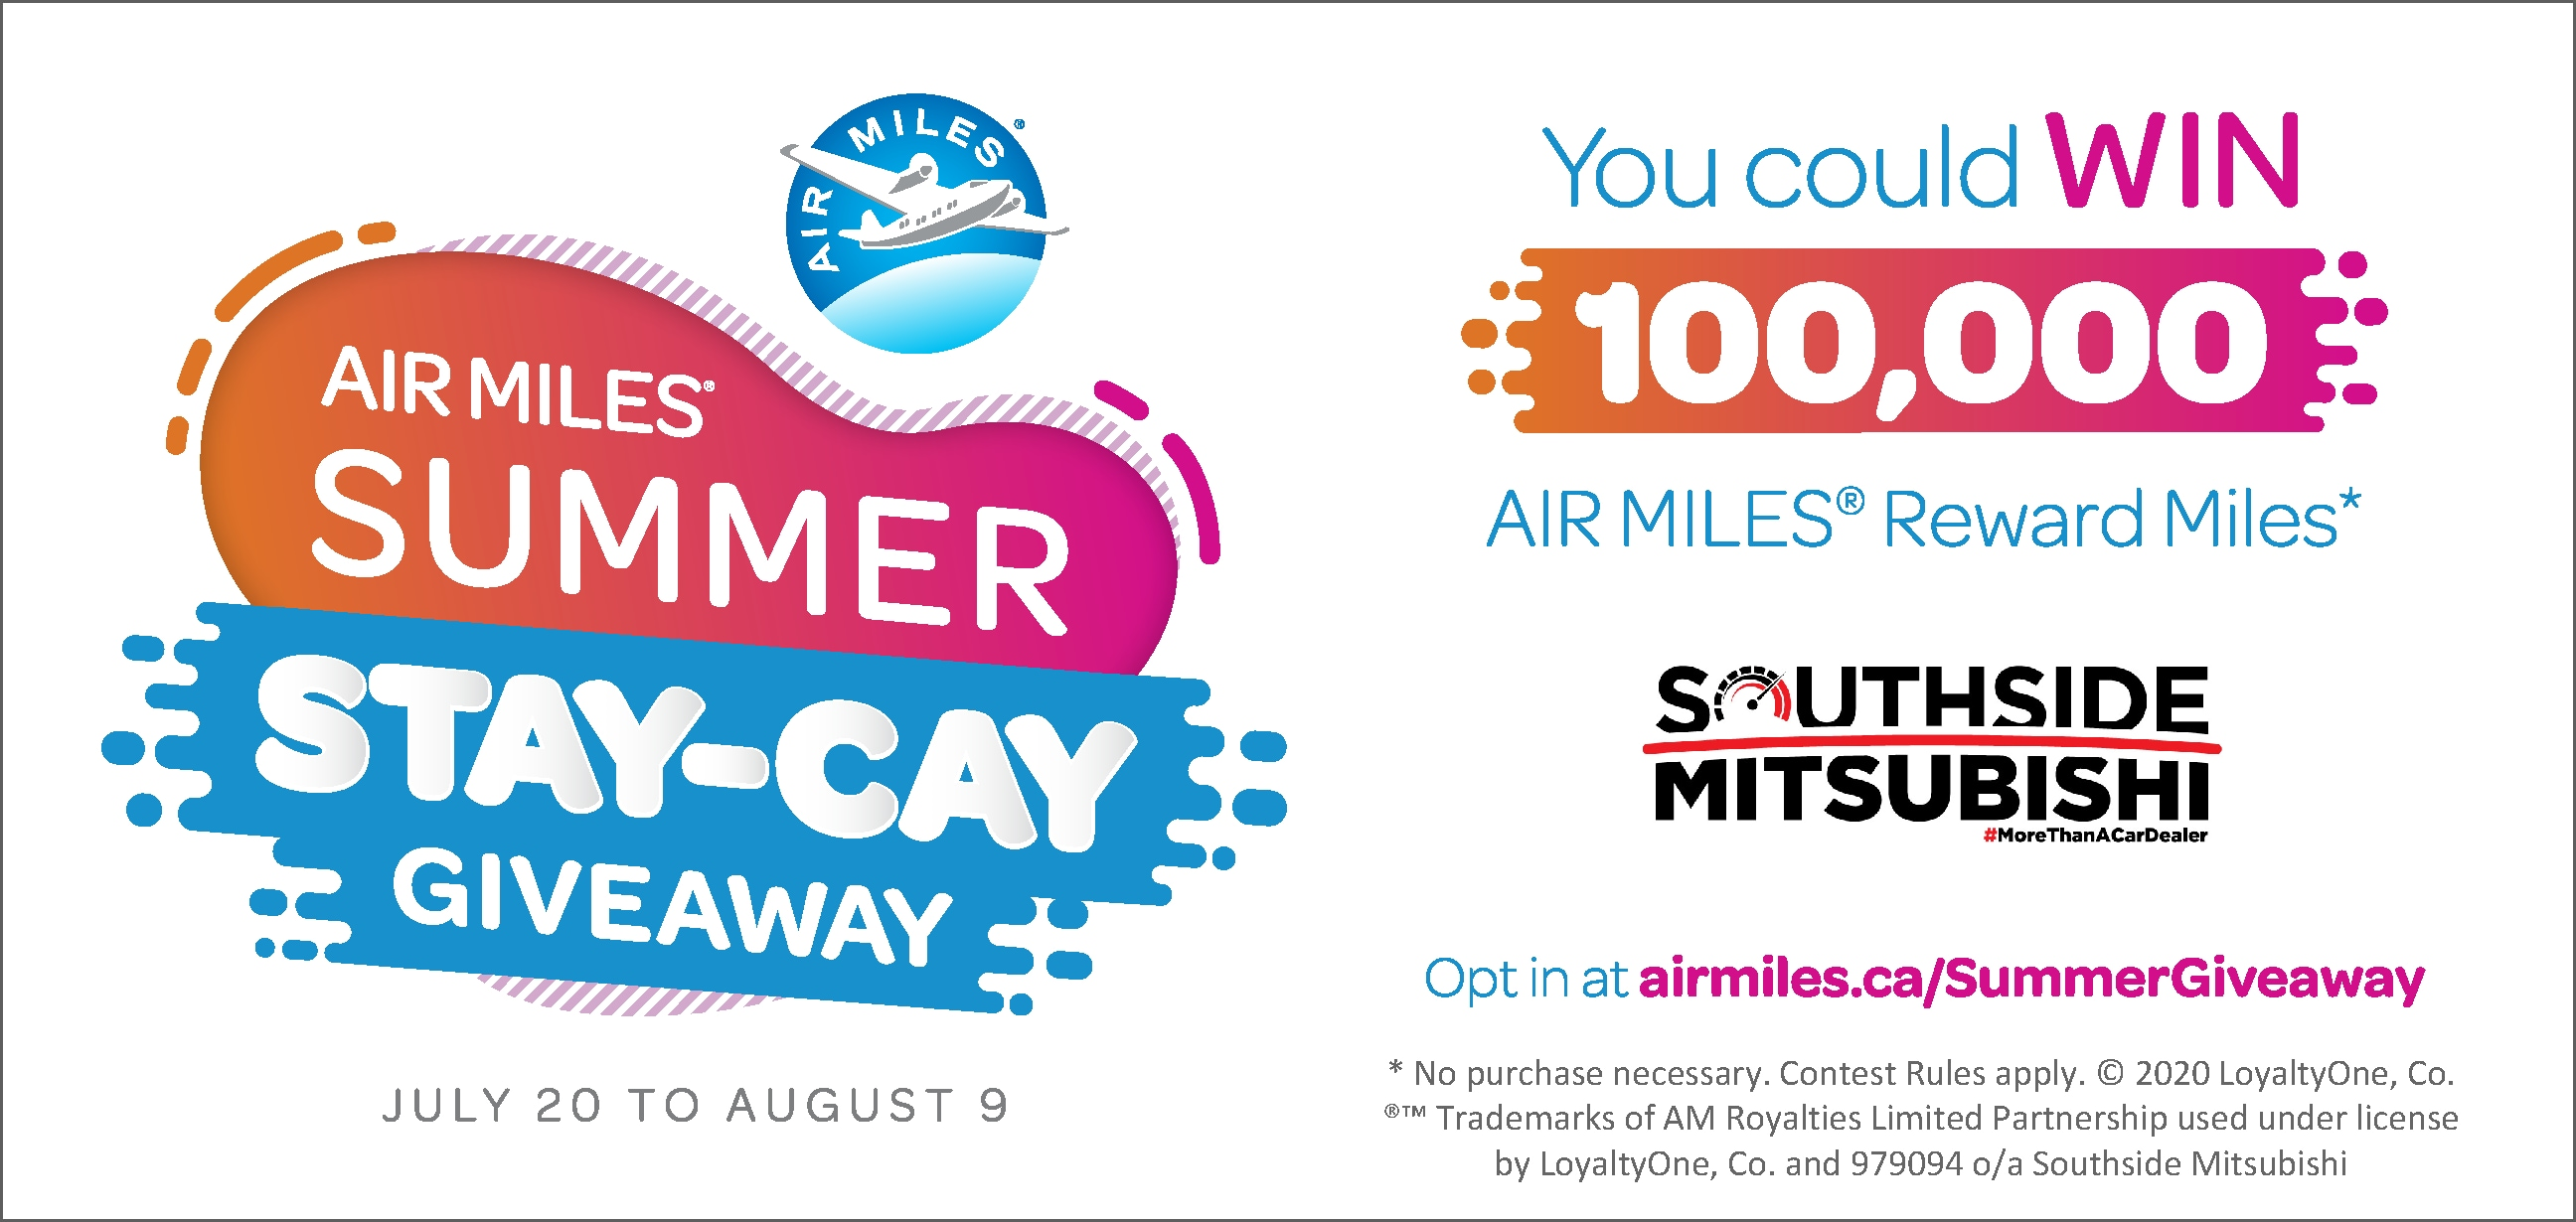 Get AIR MILES Reward Miles - Southside Mitsubishi